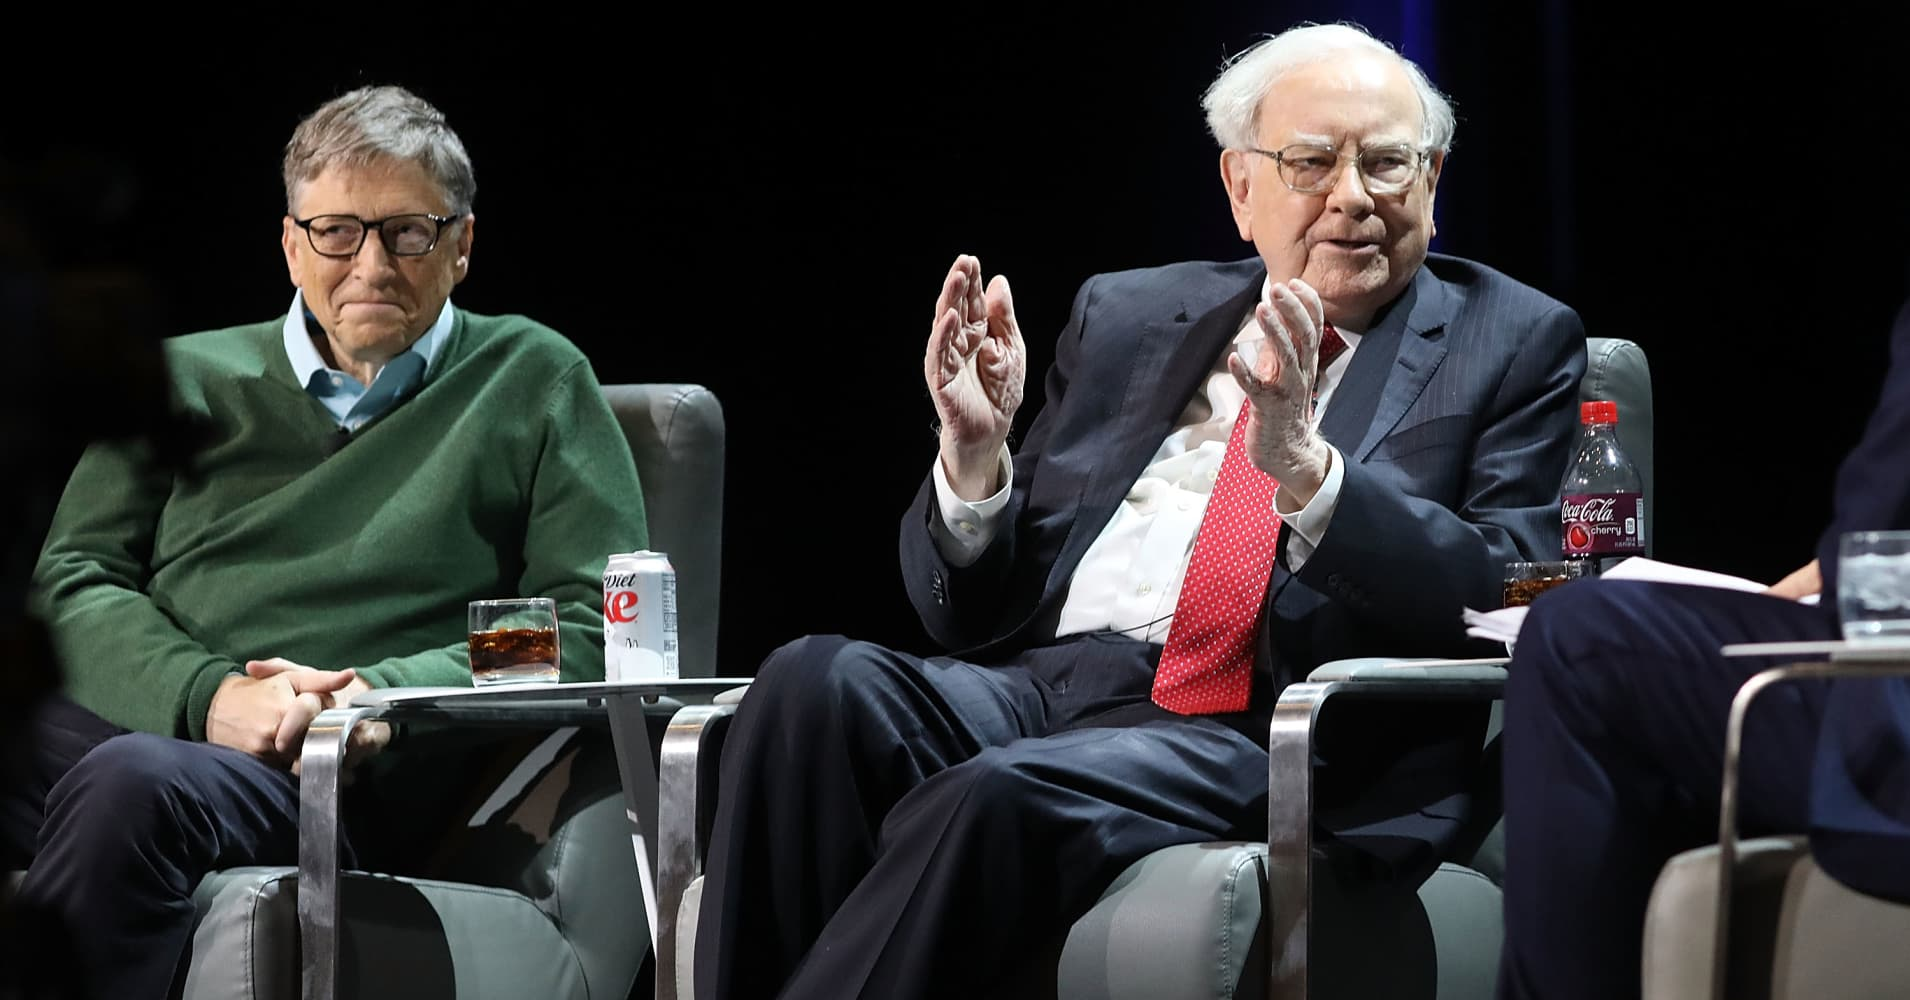 Longtime friends Warren Buffett and Bill Gates